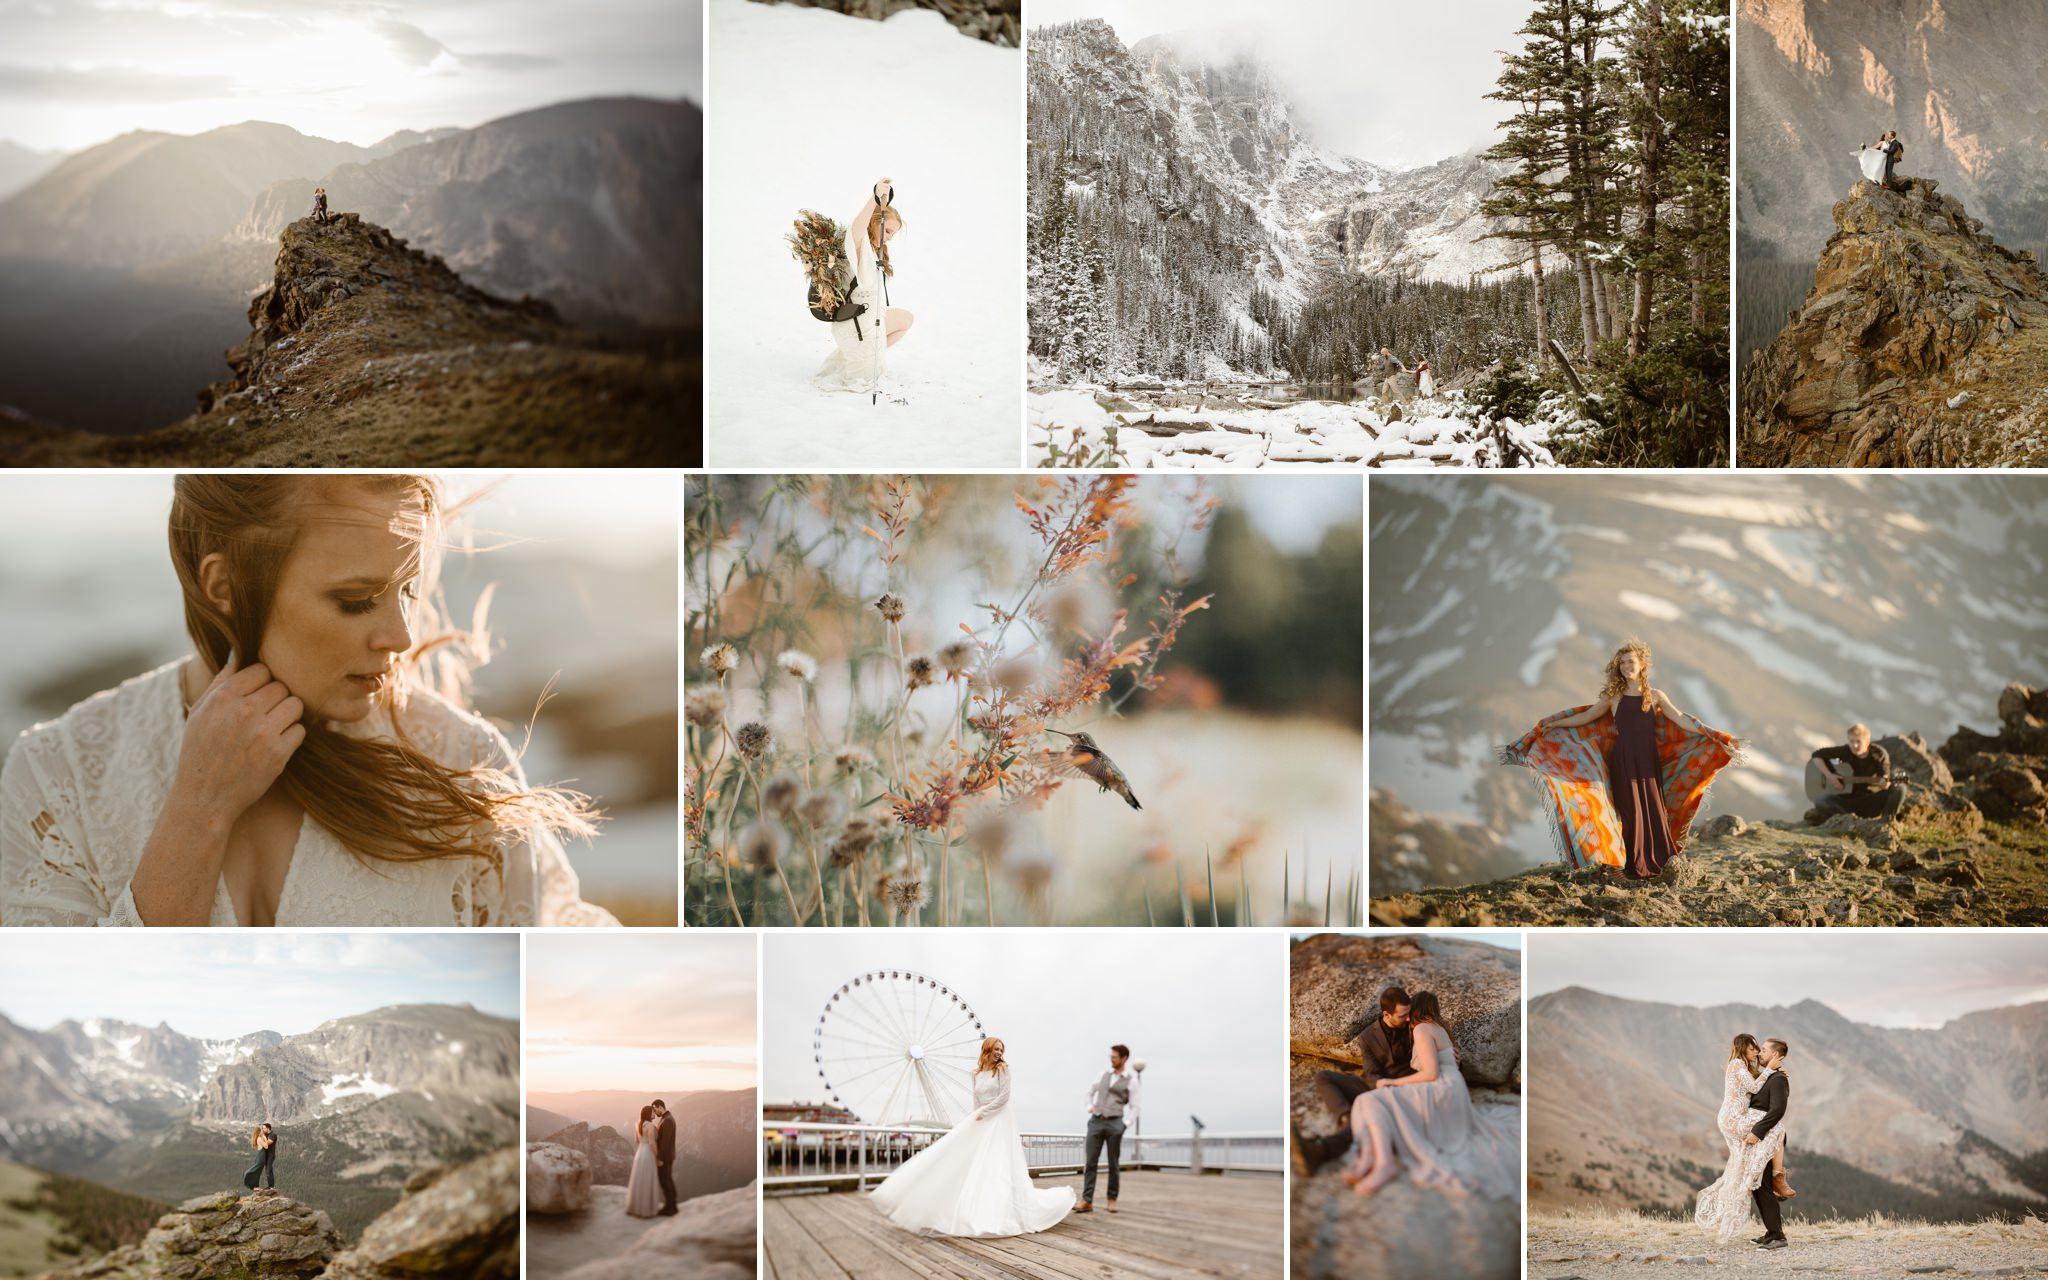 Rocky Mountain Adventure Elopements and Intimate Weddings Photographer, Justyna E Butler Photography, Colorado Mountain Wedding Photographer